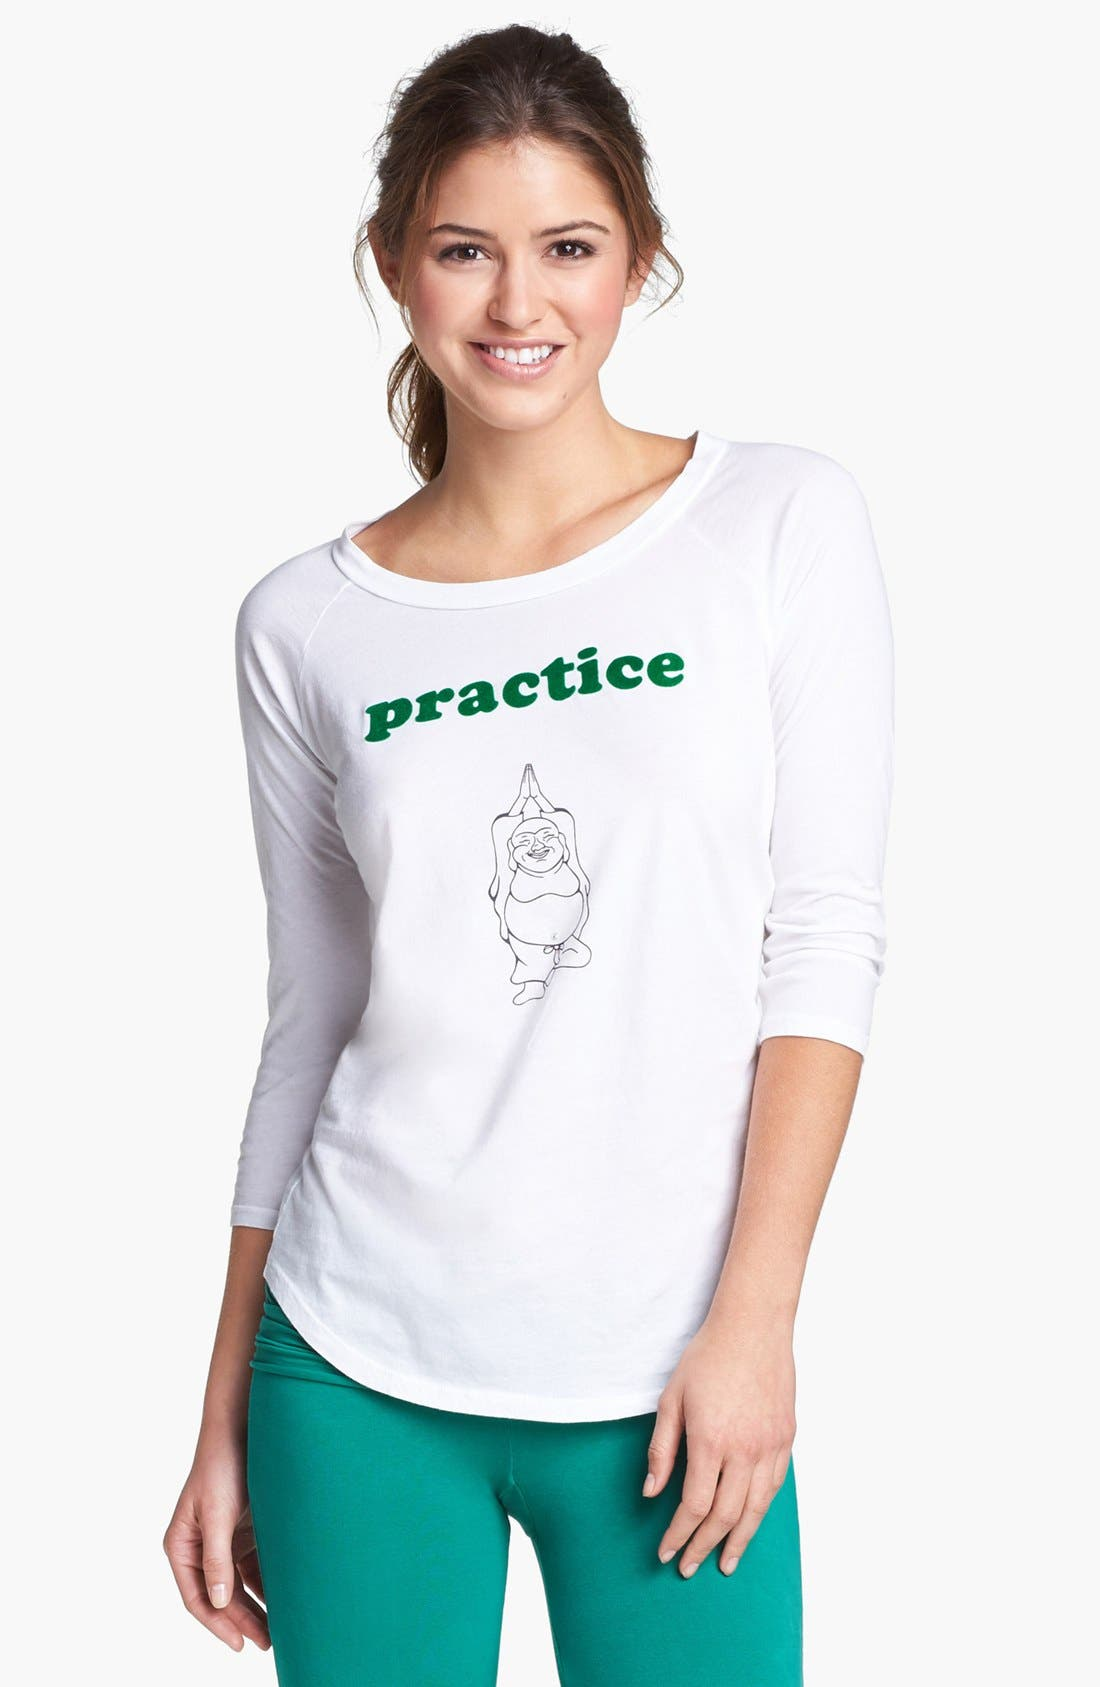 Alternate Image 1 Selected - OMGIRL 'Practice Happiness Zen' Tee